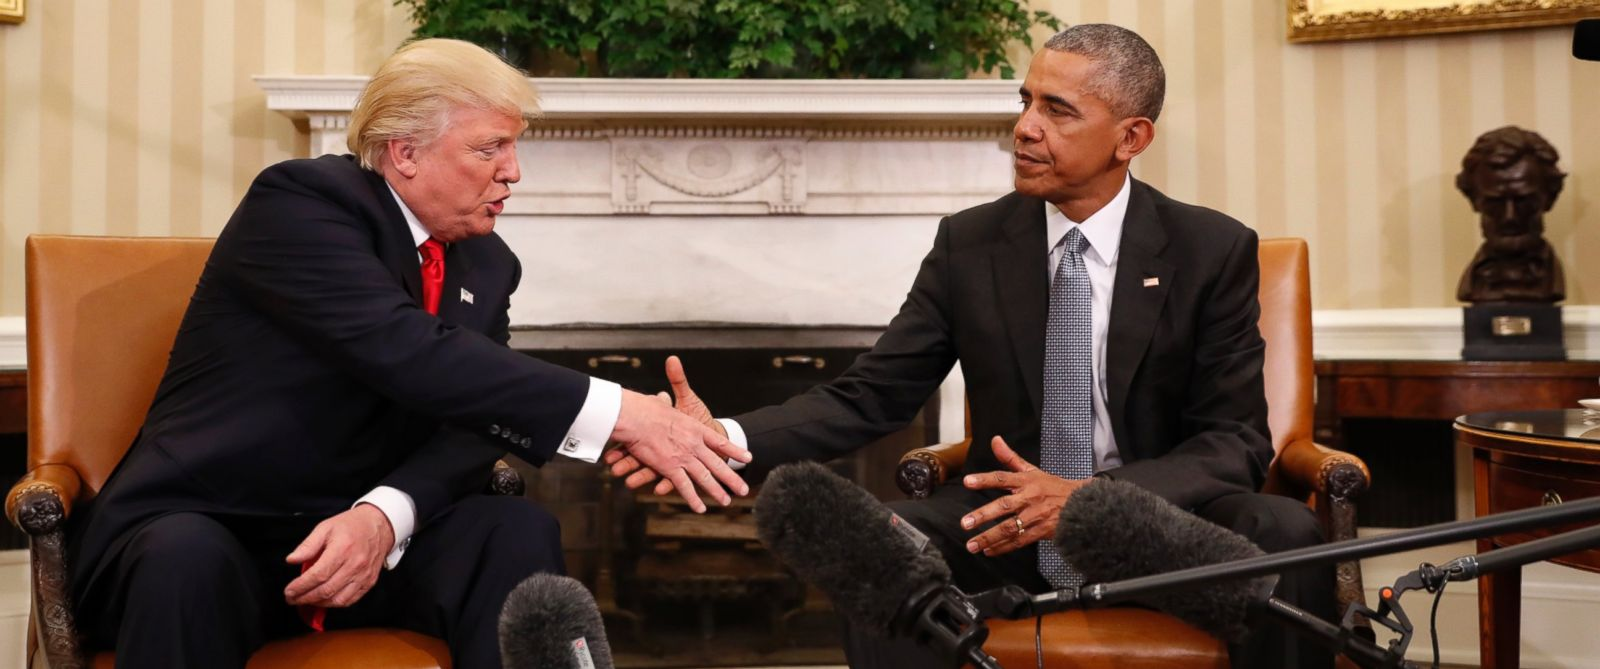 Donald Trump Calls Meeting Barack Obama Great Honor Abc News